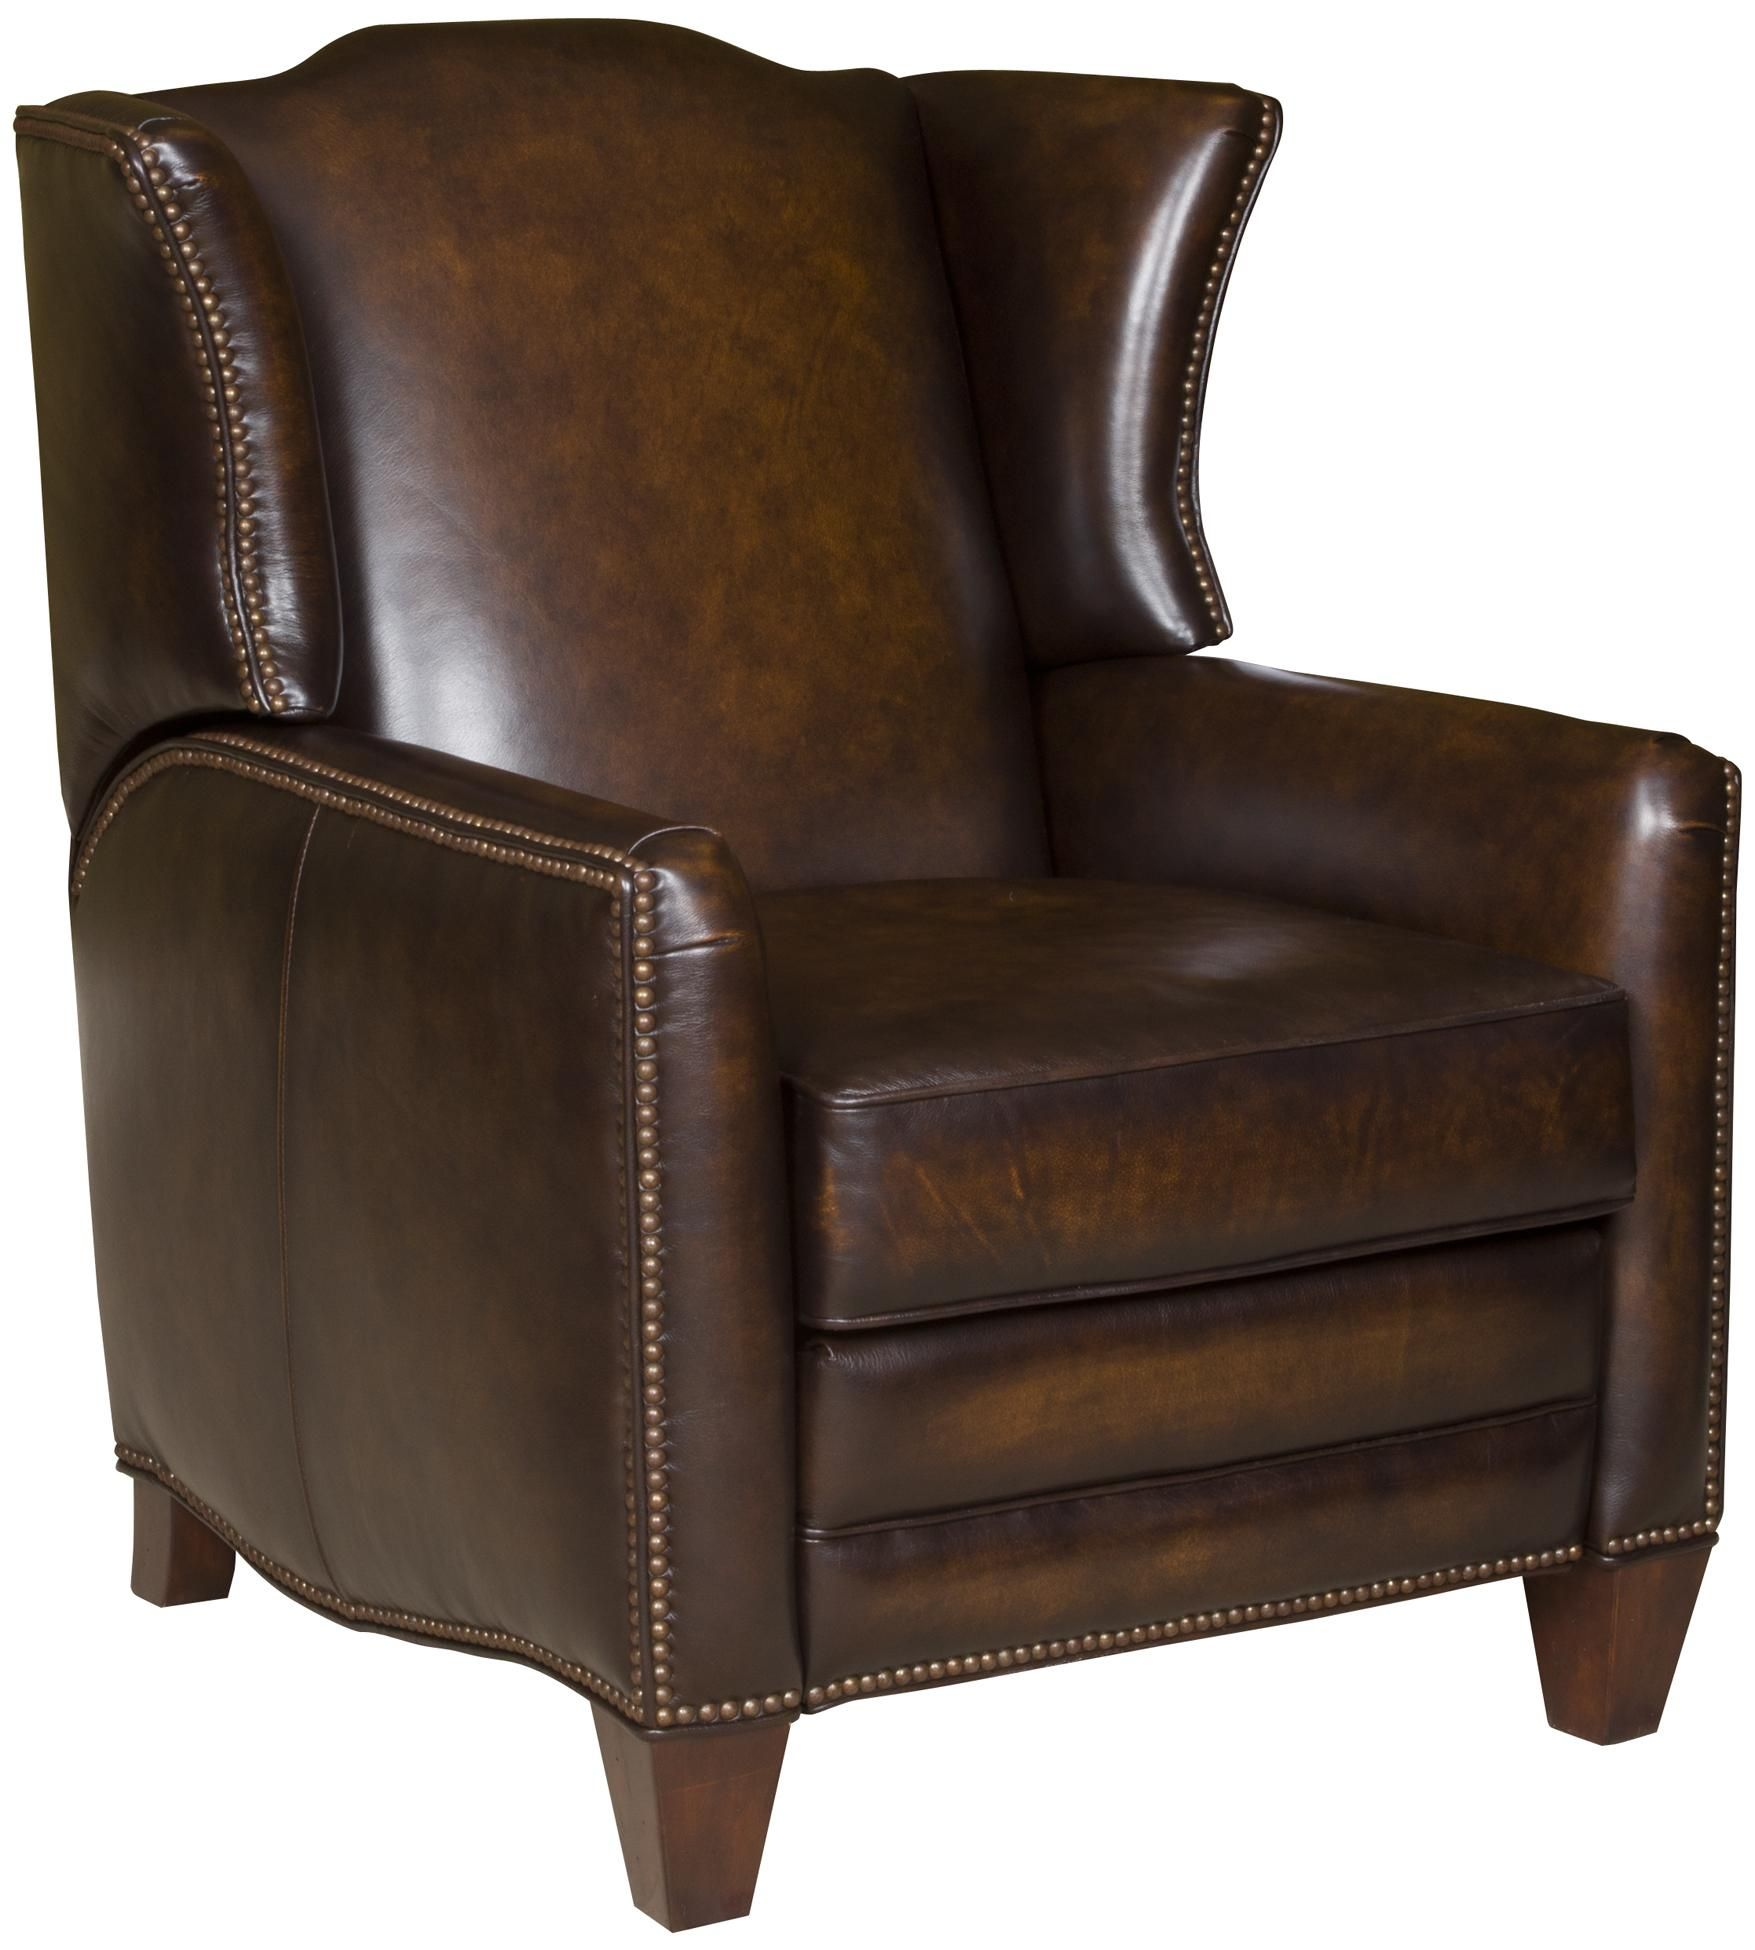 Accent Chairs and Ottomans Athens Recliner by King Hickory